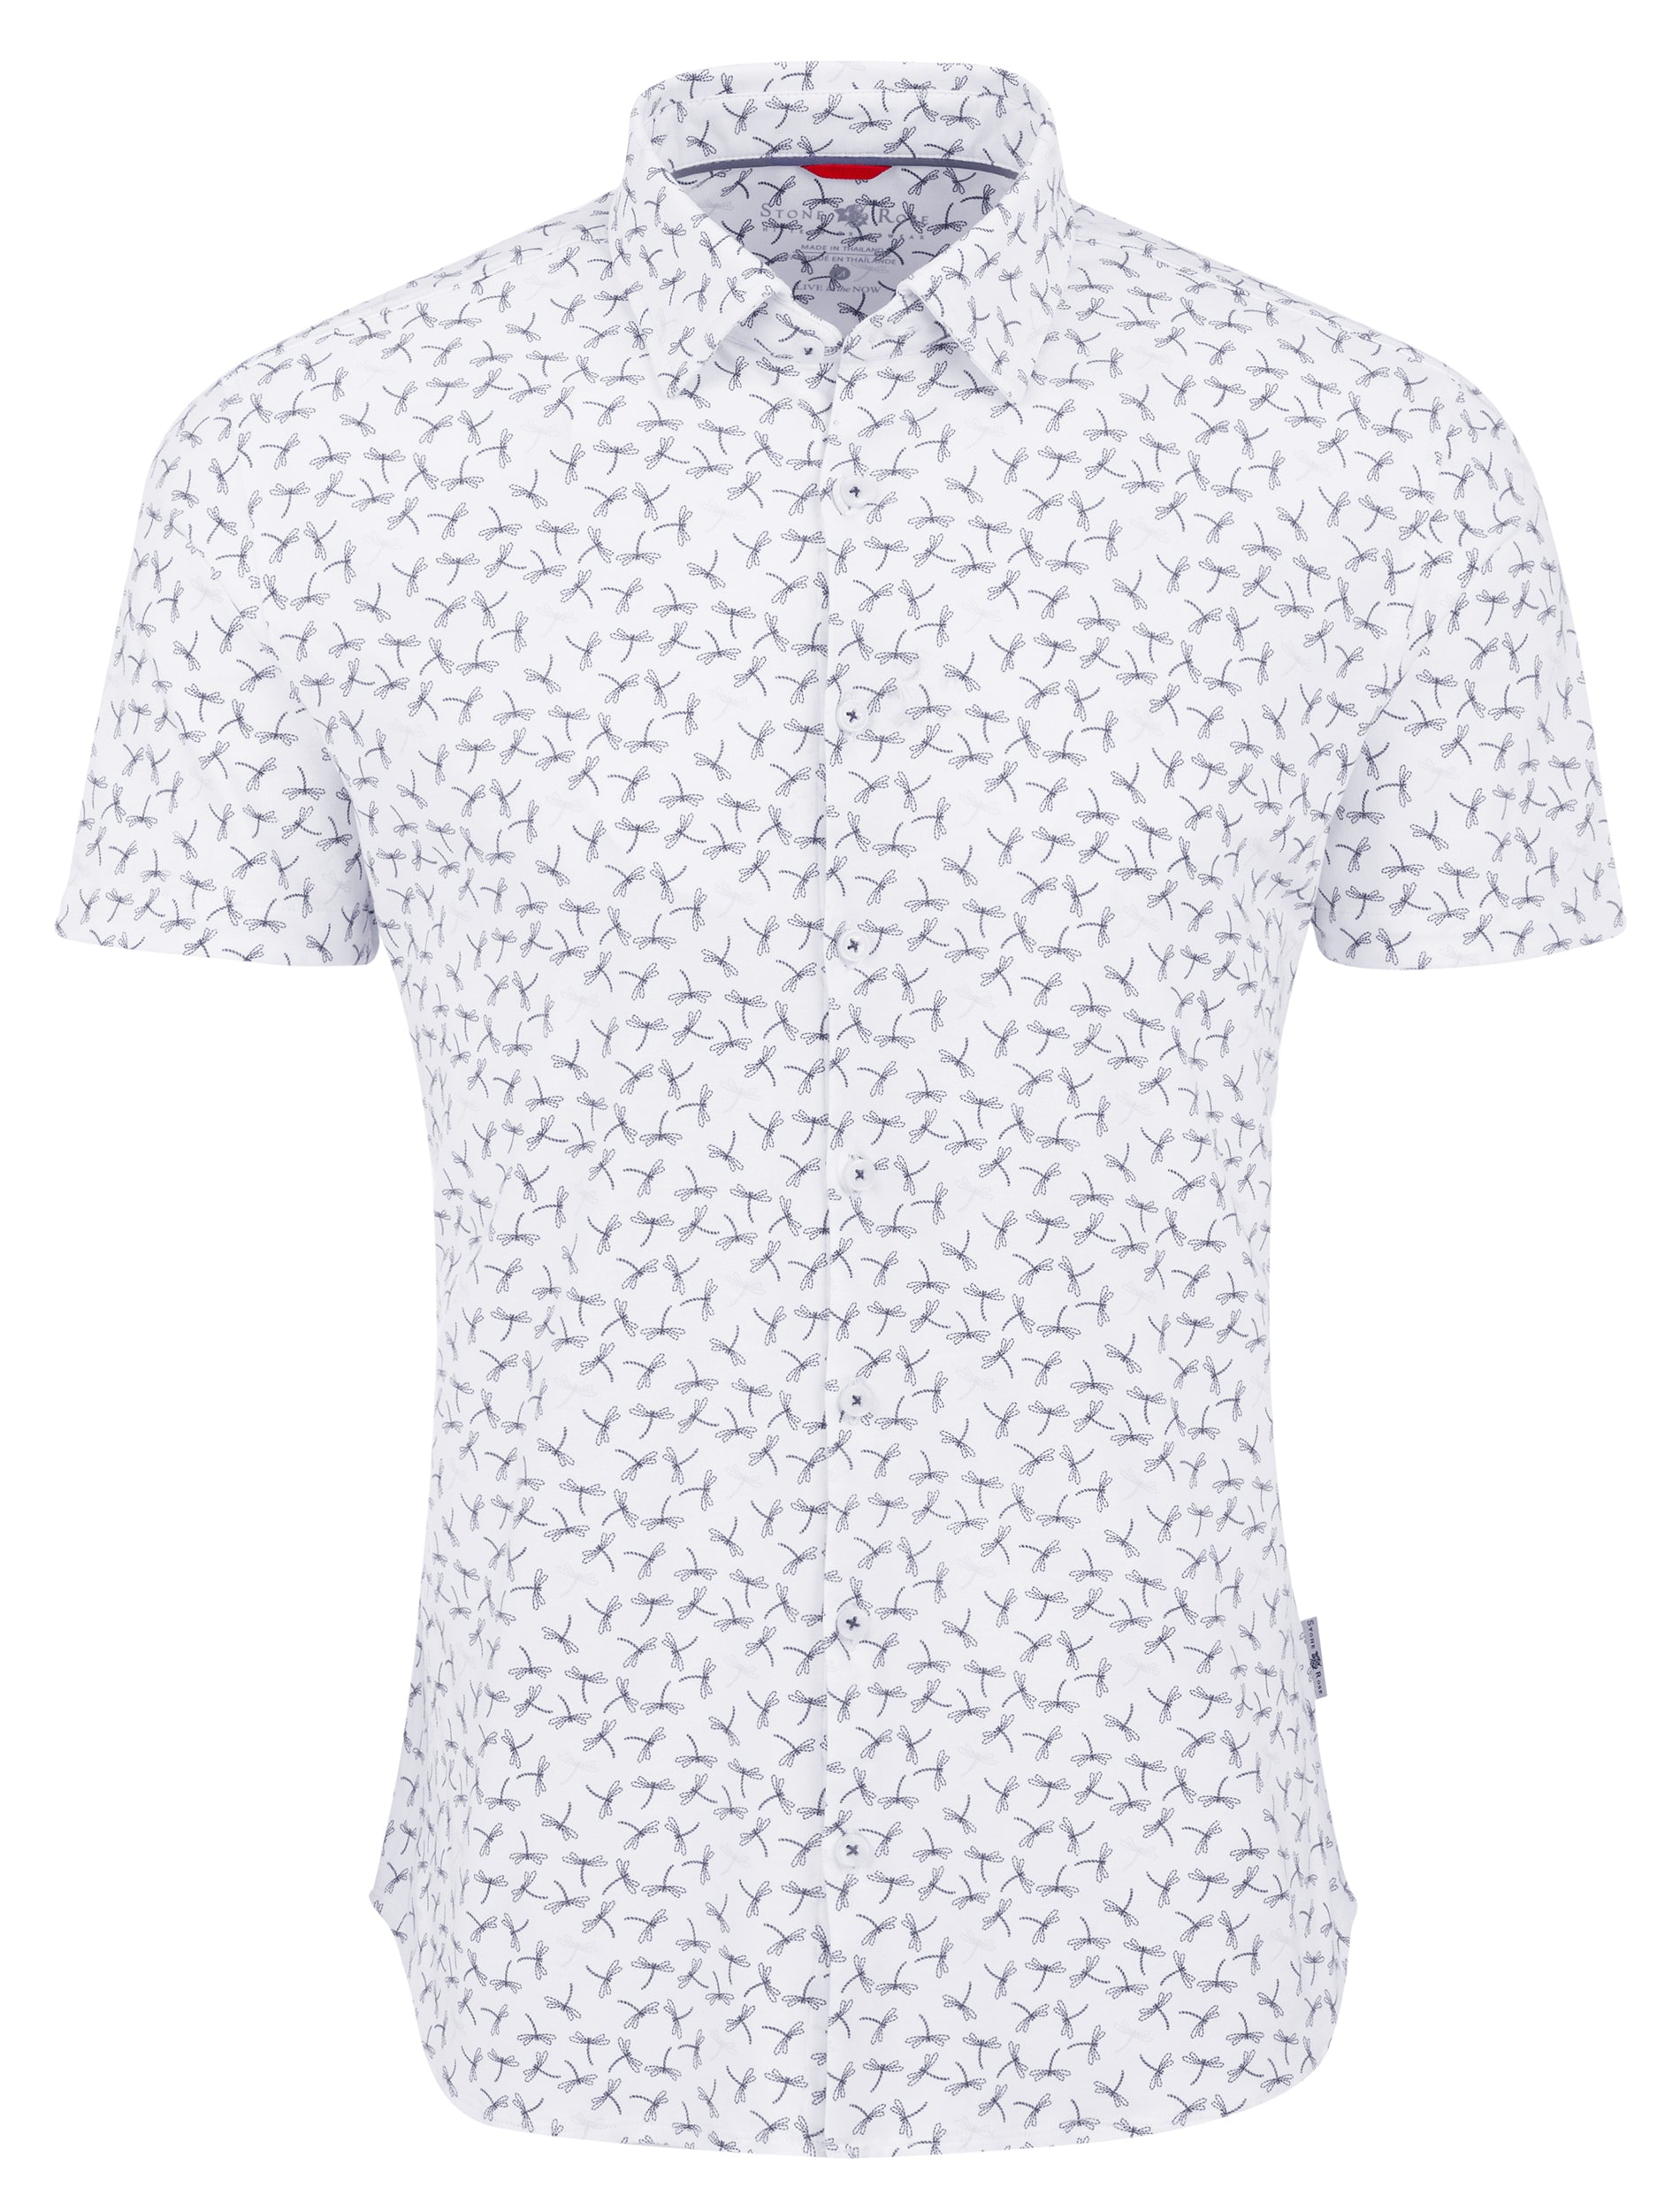 White Dragonfly Performance Knit Short Sleeve Shirt